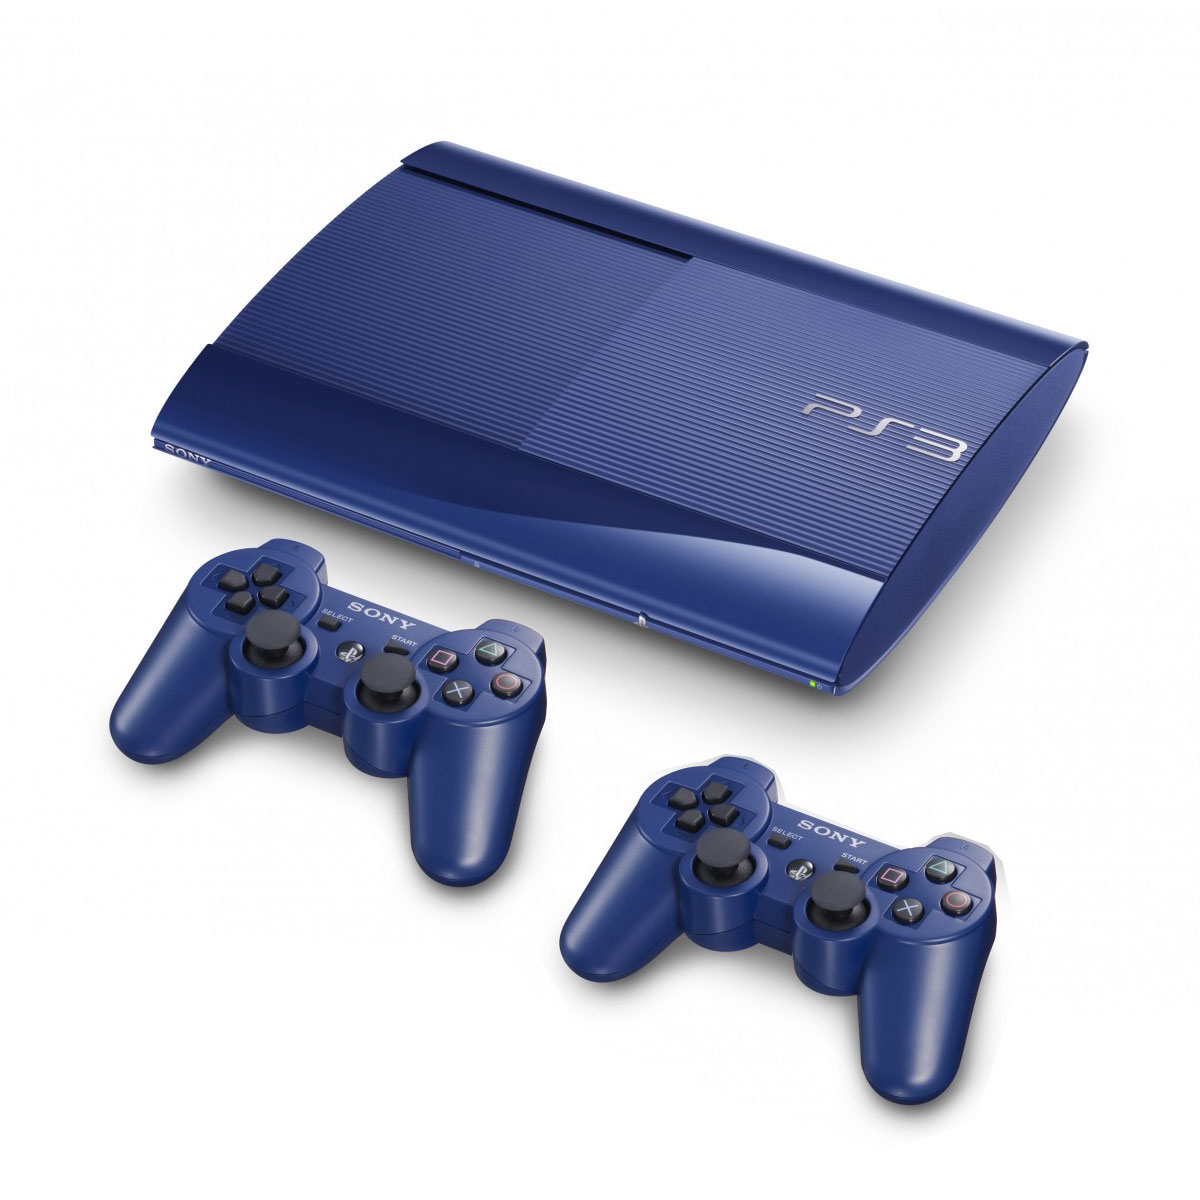 sony playstation 3 ultra slim 500 go bleue 2 manettes sony interactive. Black Bedroom Furniture Sets. Home Design Ideas